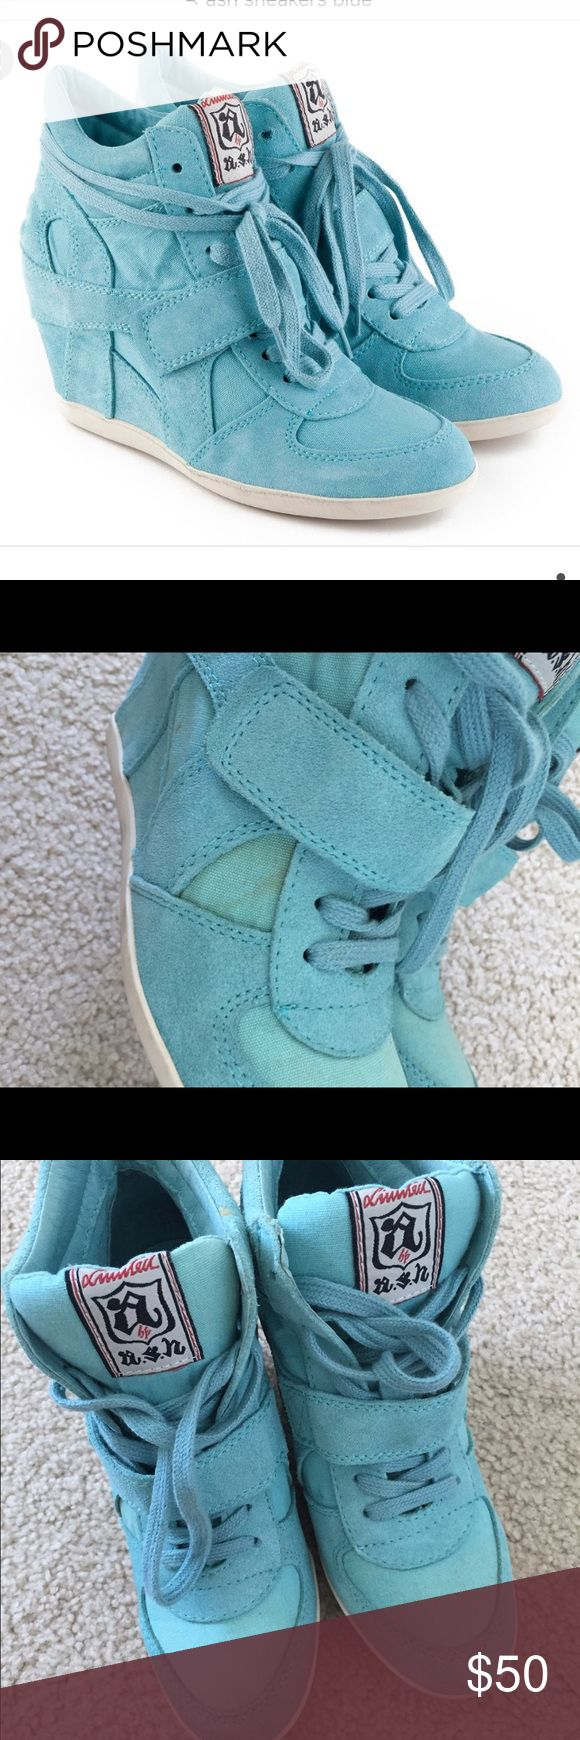 Ash sneakers blue suede Pre- owned please look at the pictures. Size 37 Ash Shoes Athletic Shoes